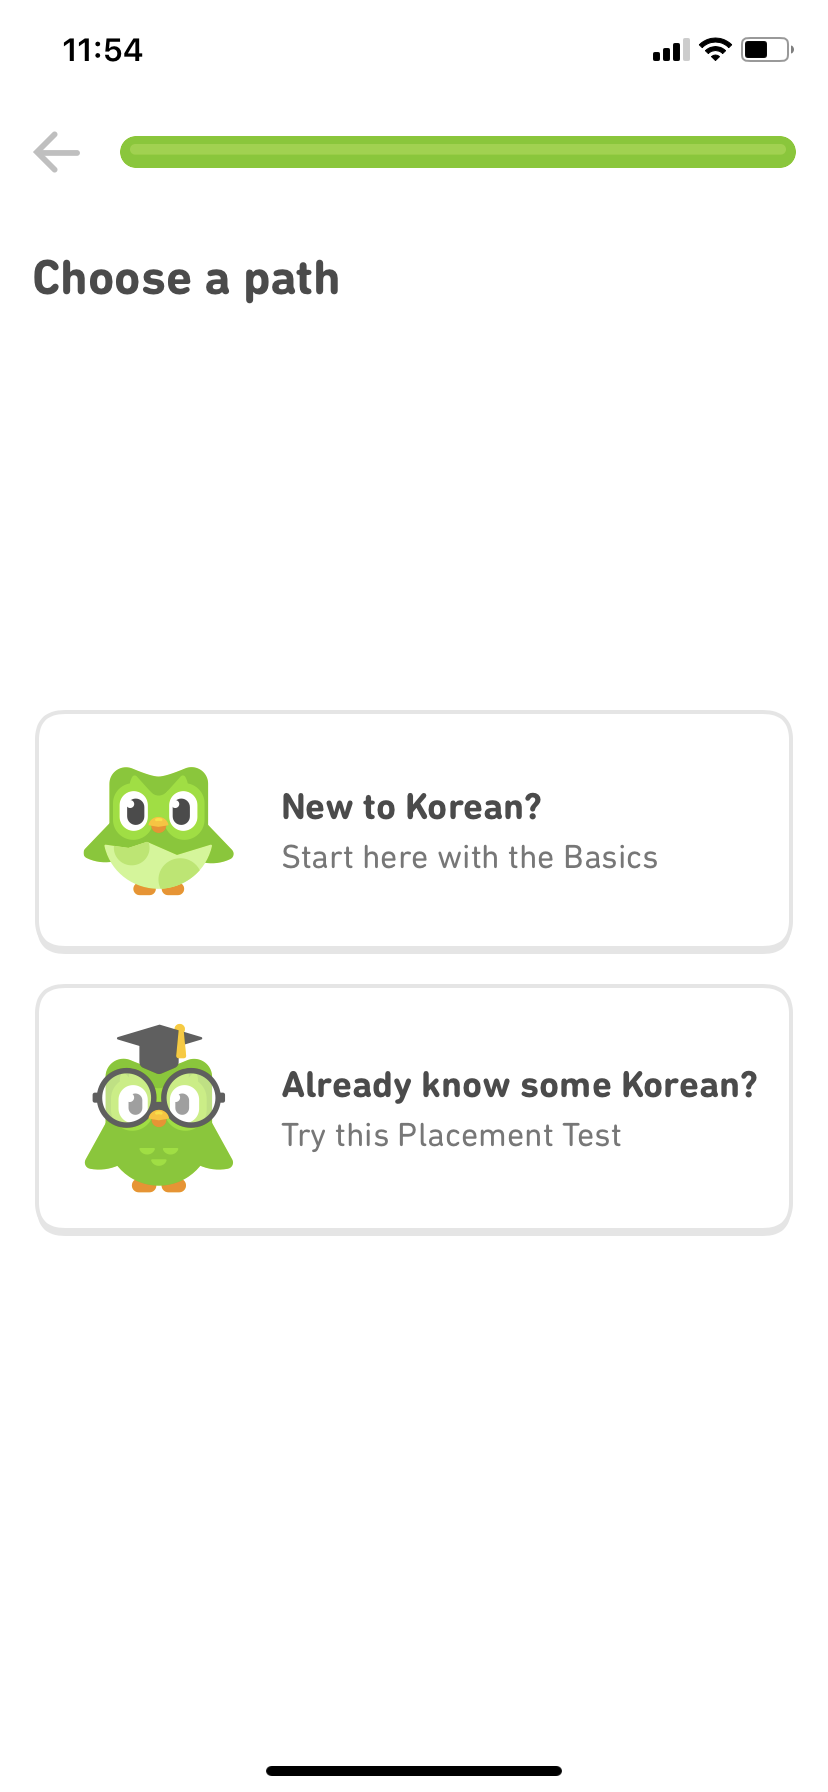 duolingo personalized onboarding expereince by knowledge level